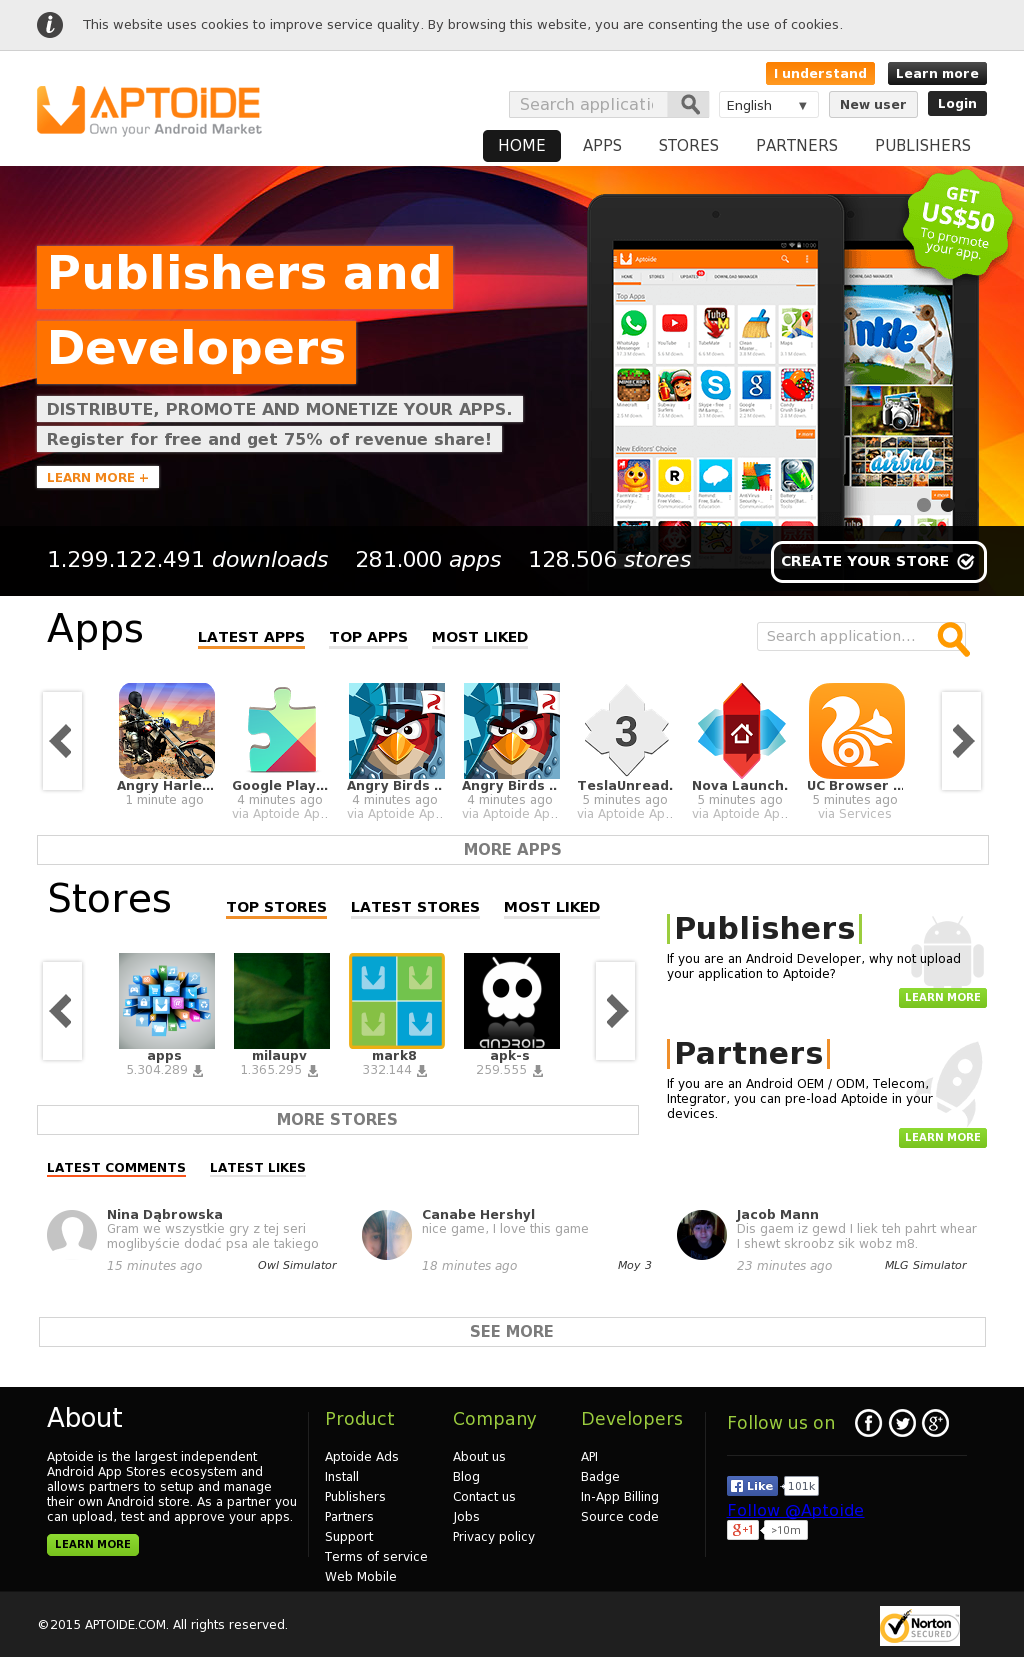 Aptoide Competitors, Revenue and Employees - Owler Company